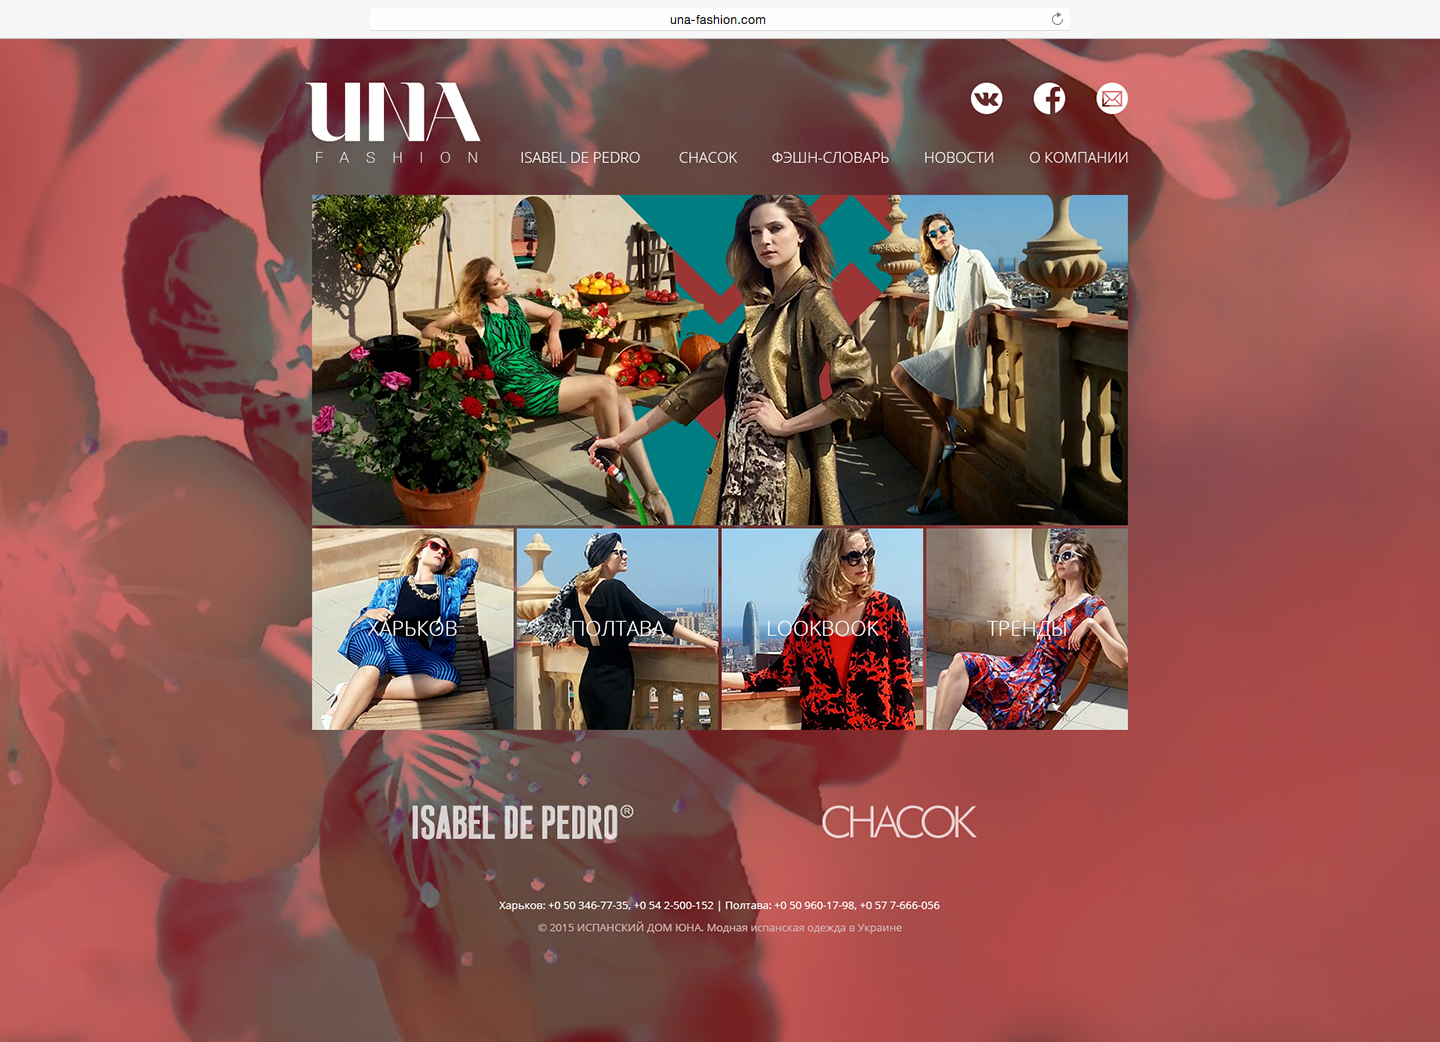 Website design and development for clothing retail stores Una Fashion